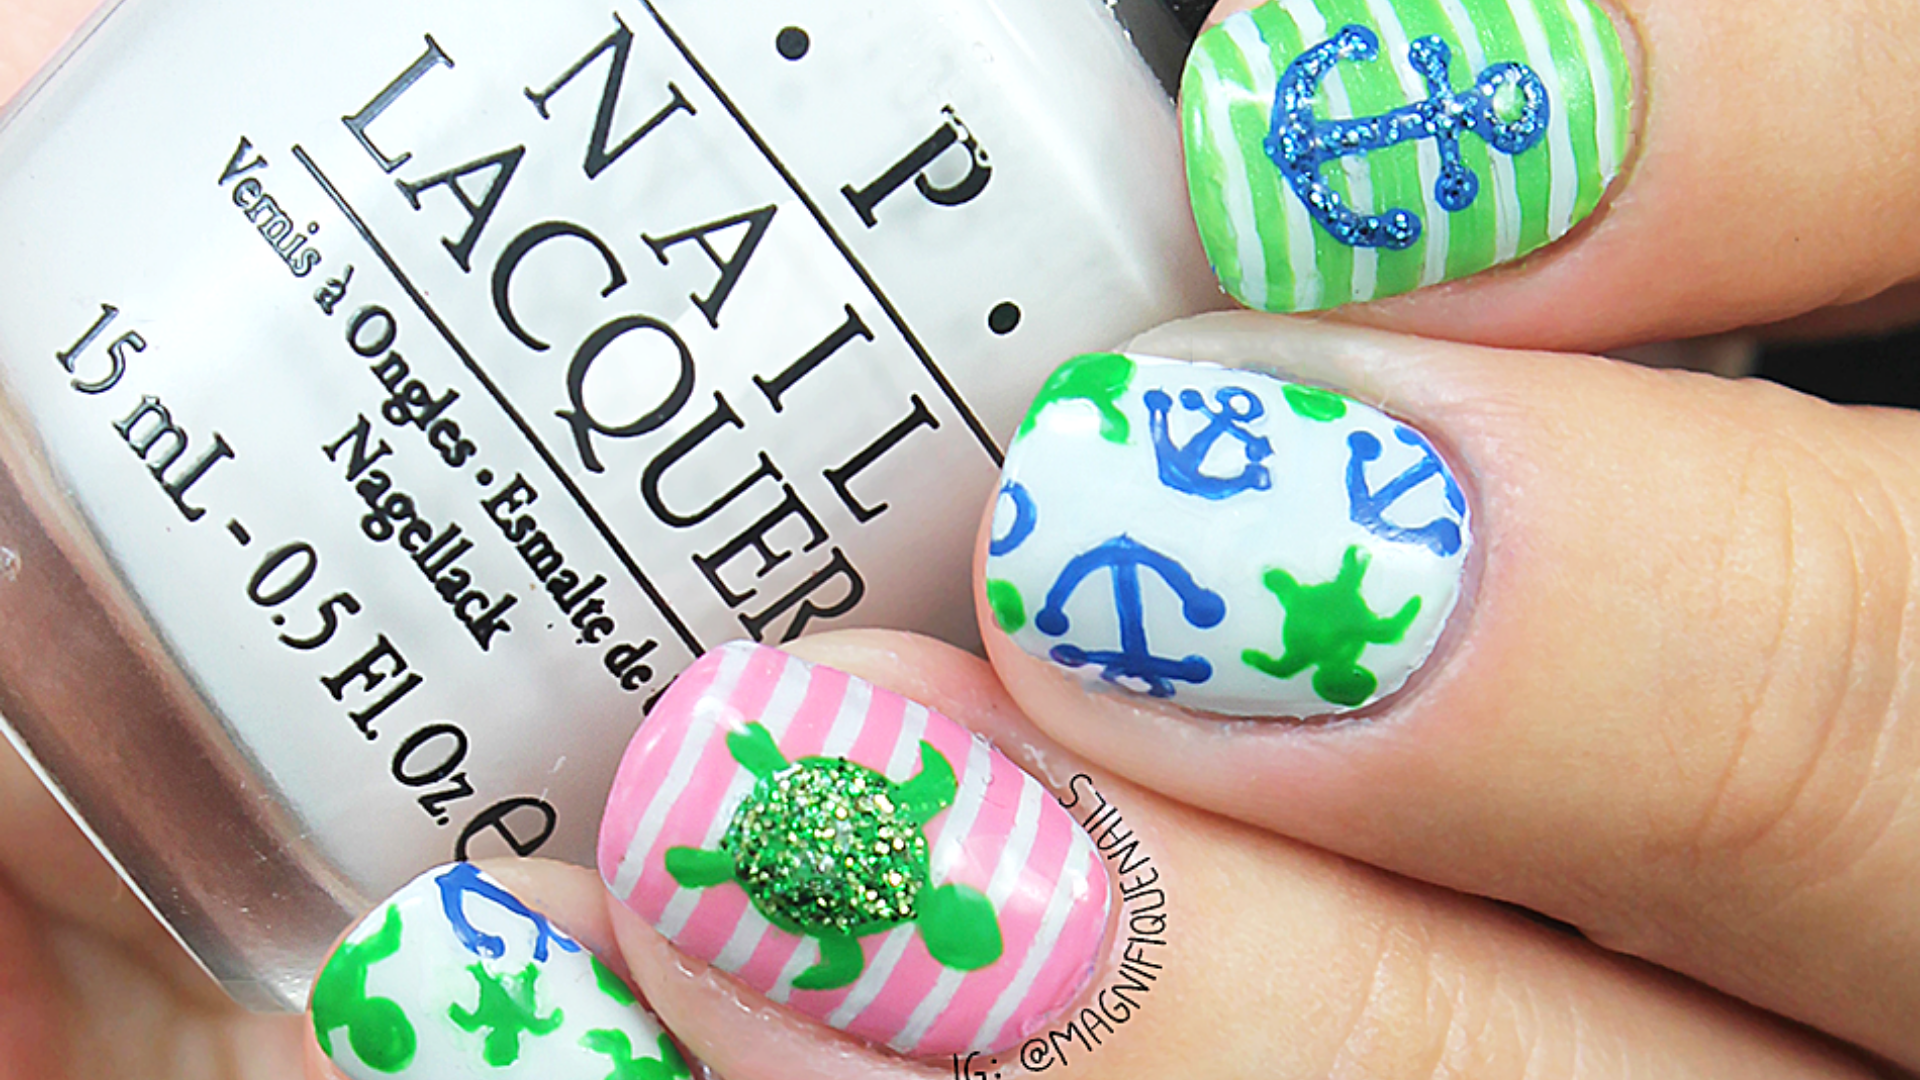 It's just a photo of Printable Nail Designs inside homemade